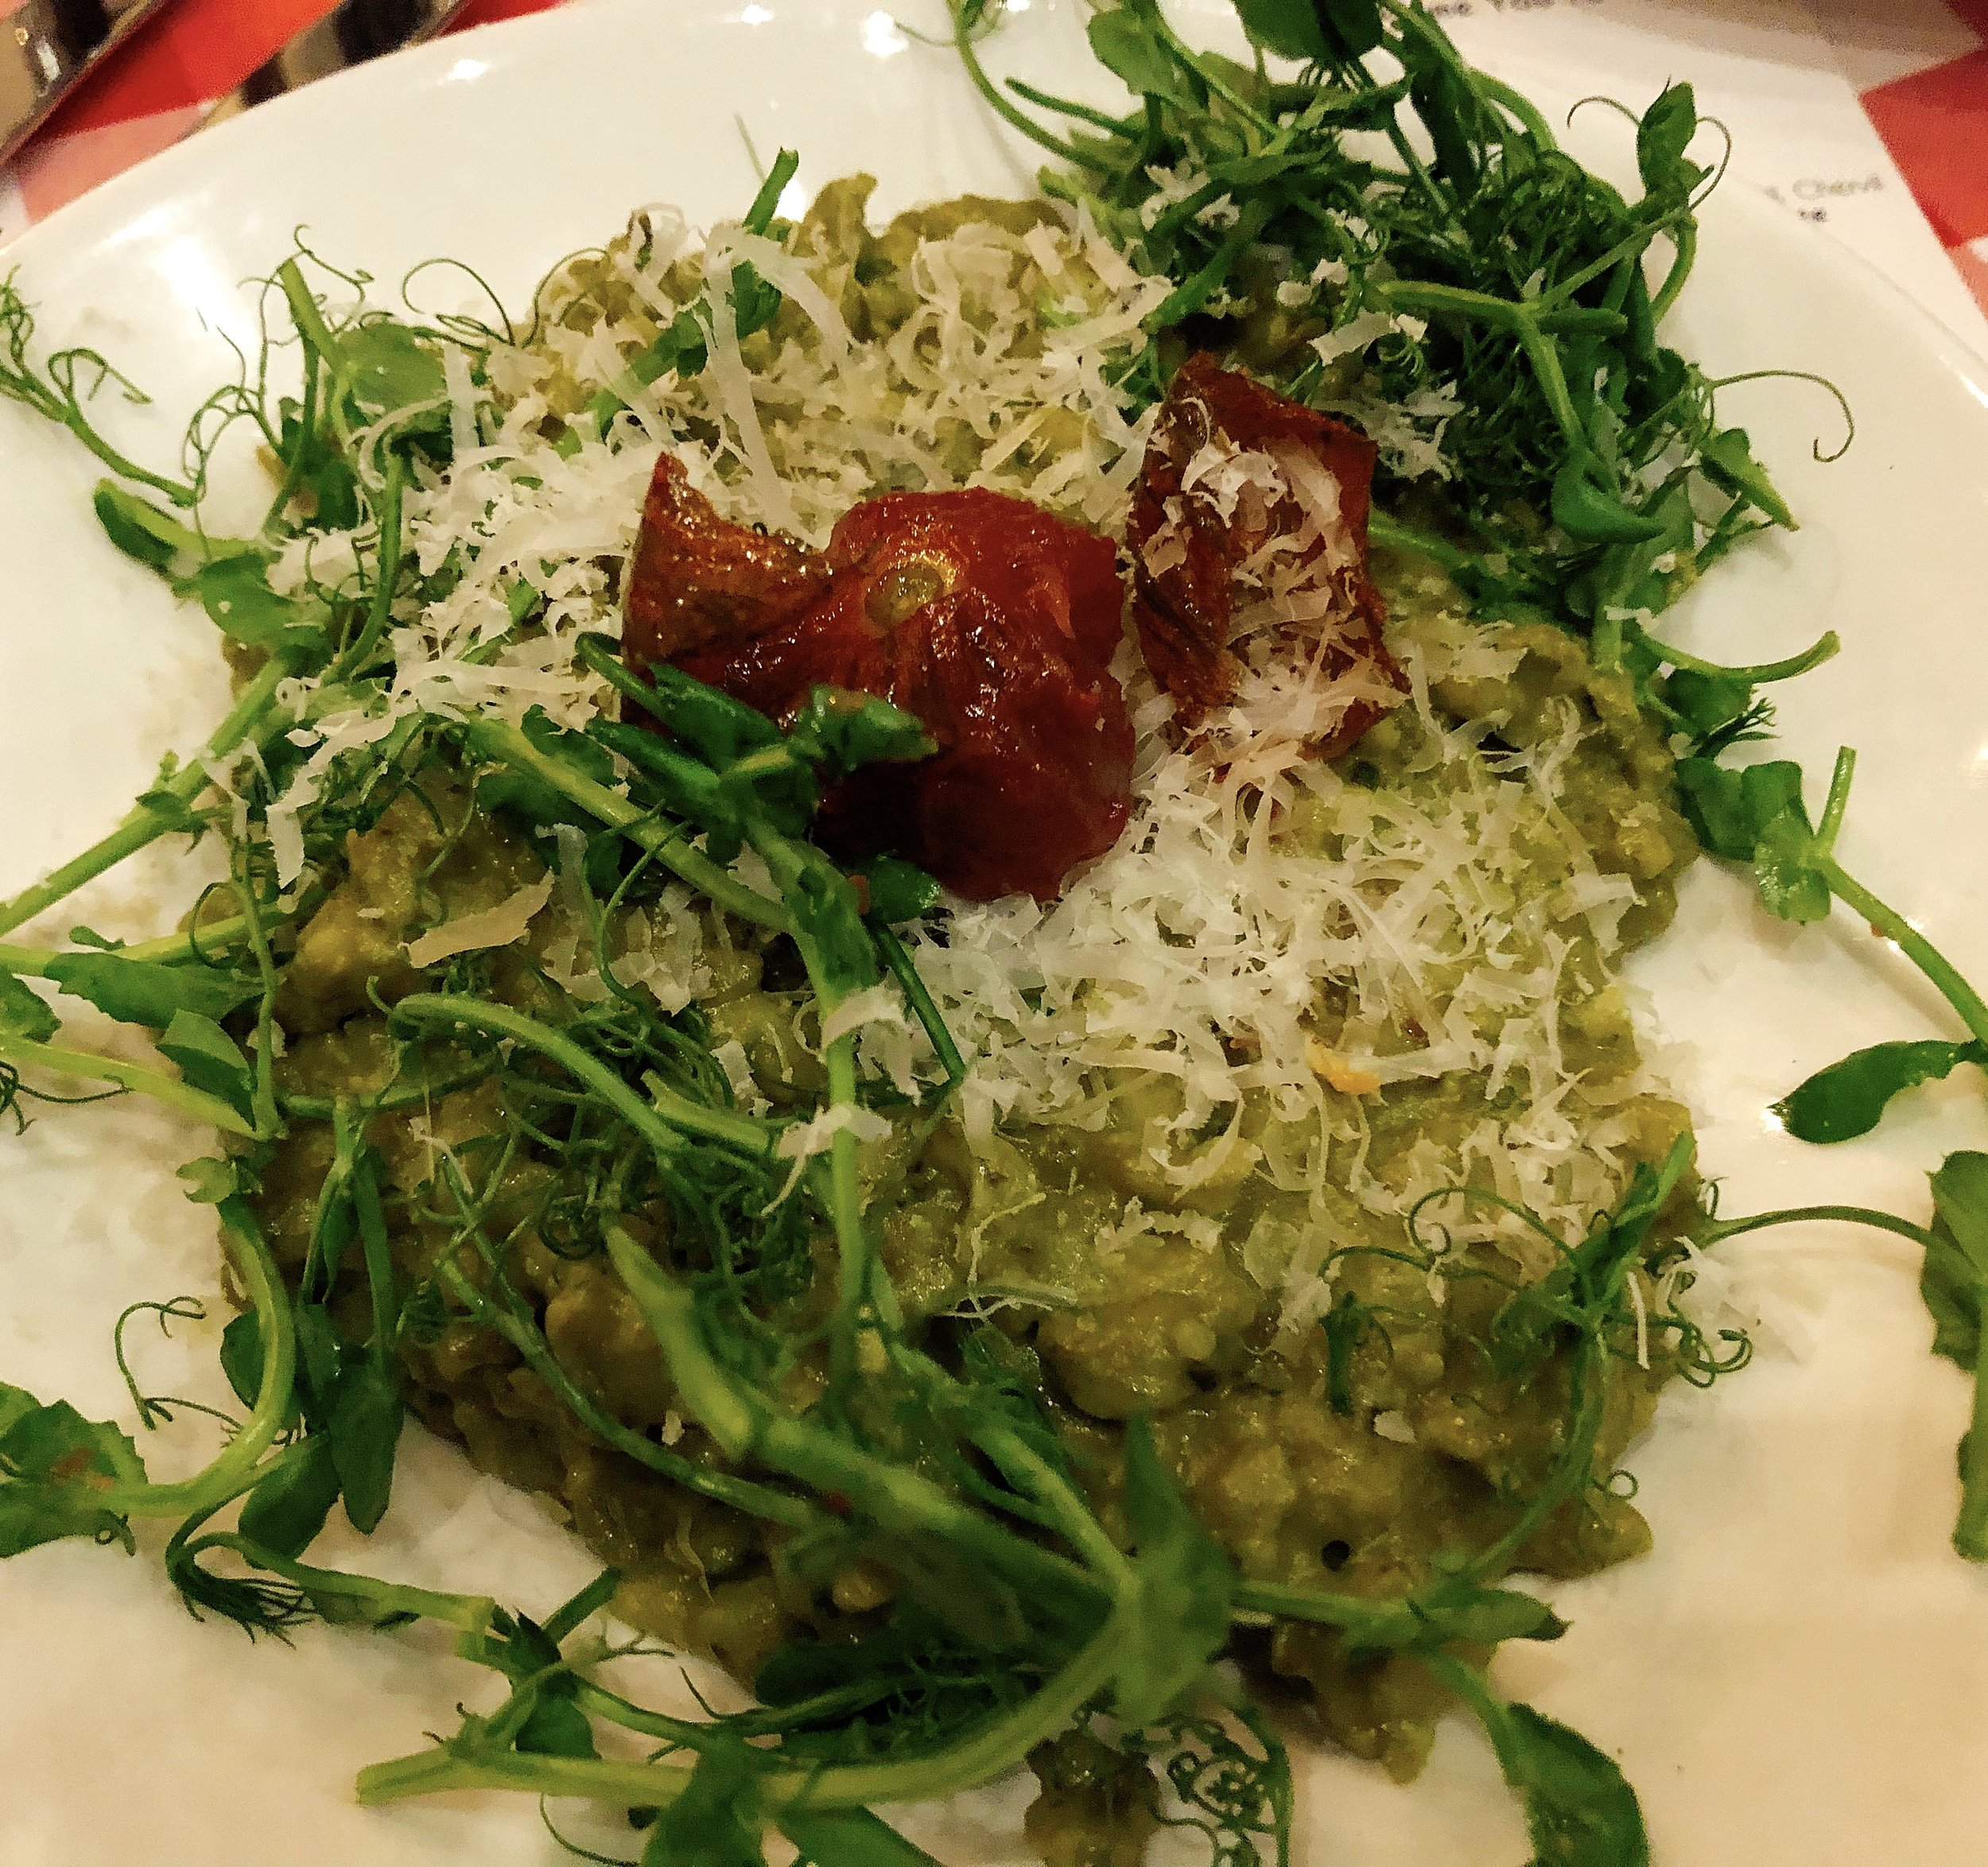 Risotto With A Side Of Spaghetti ( No Meatball): Shallot + Garlic + Chiffonade Baby Spinach + Chive + Parmesean